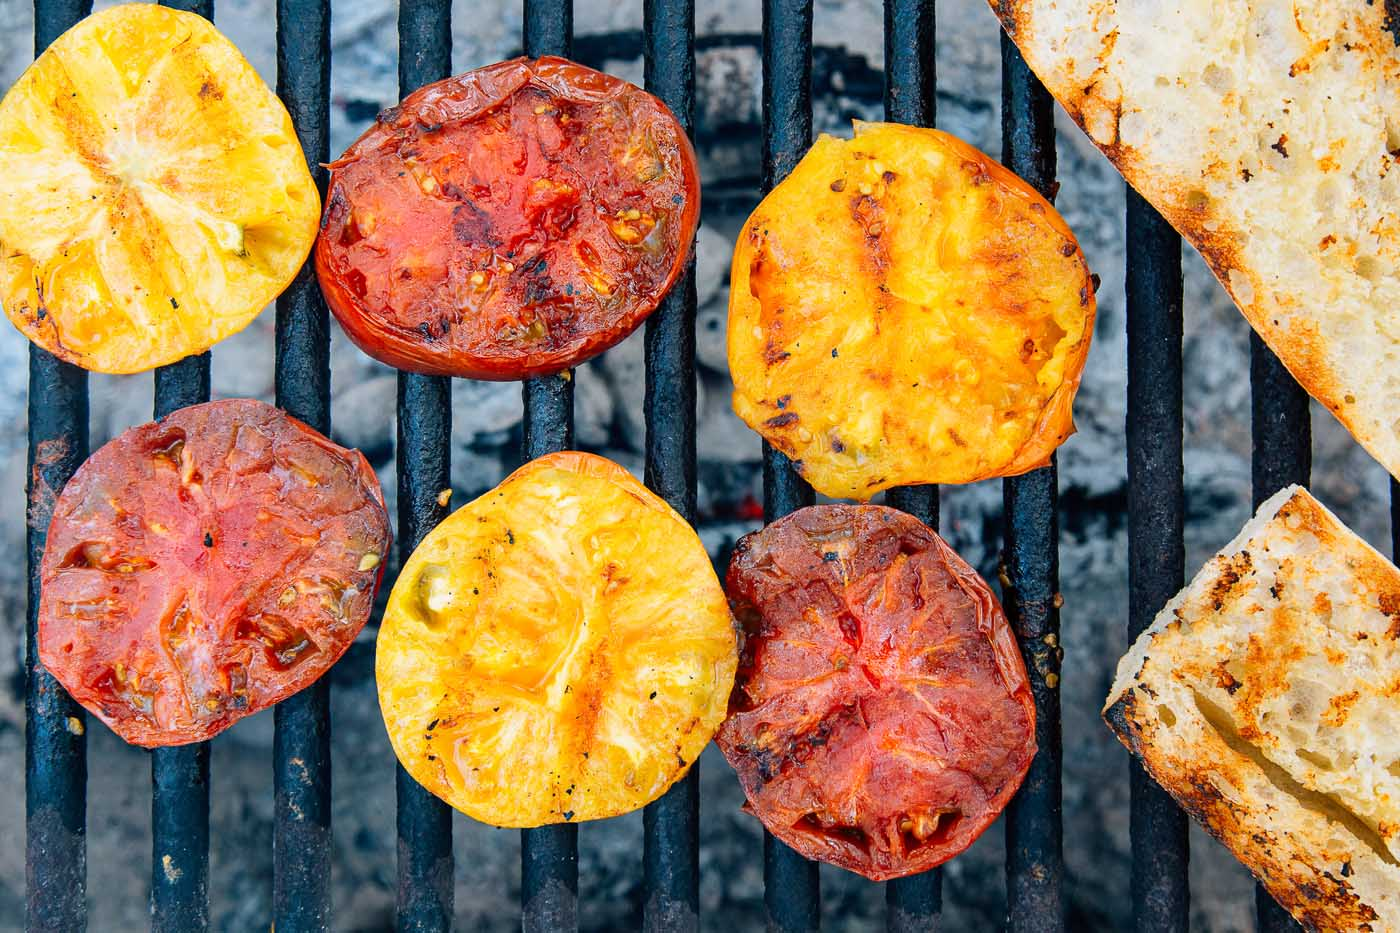 Grilling tomatoes over a campfire